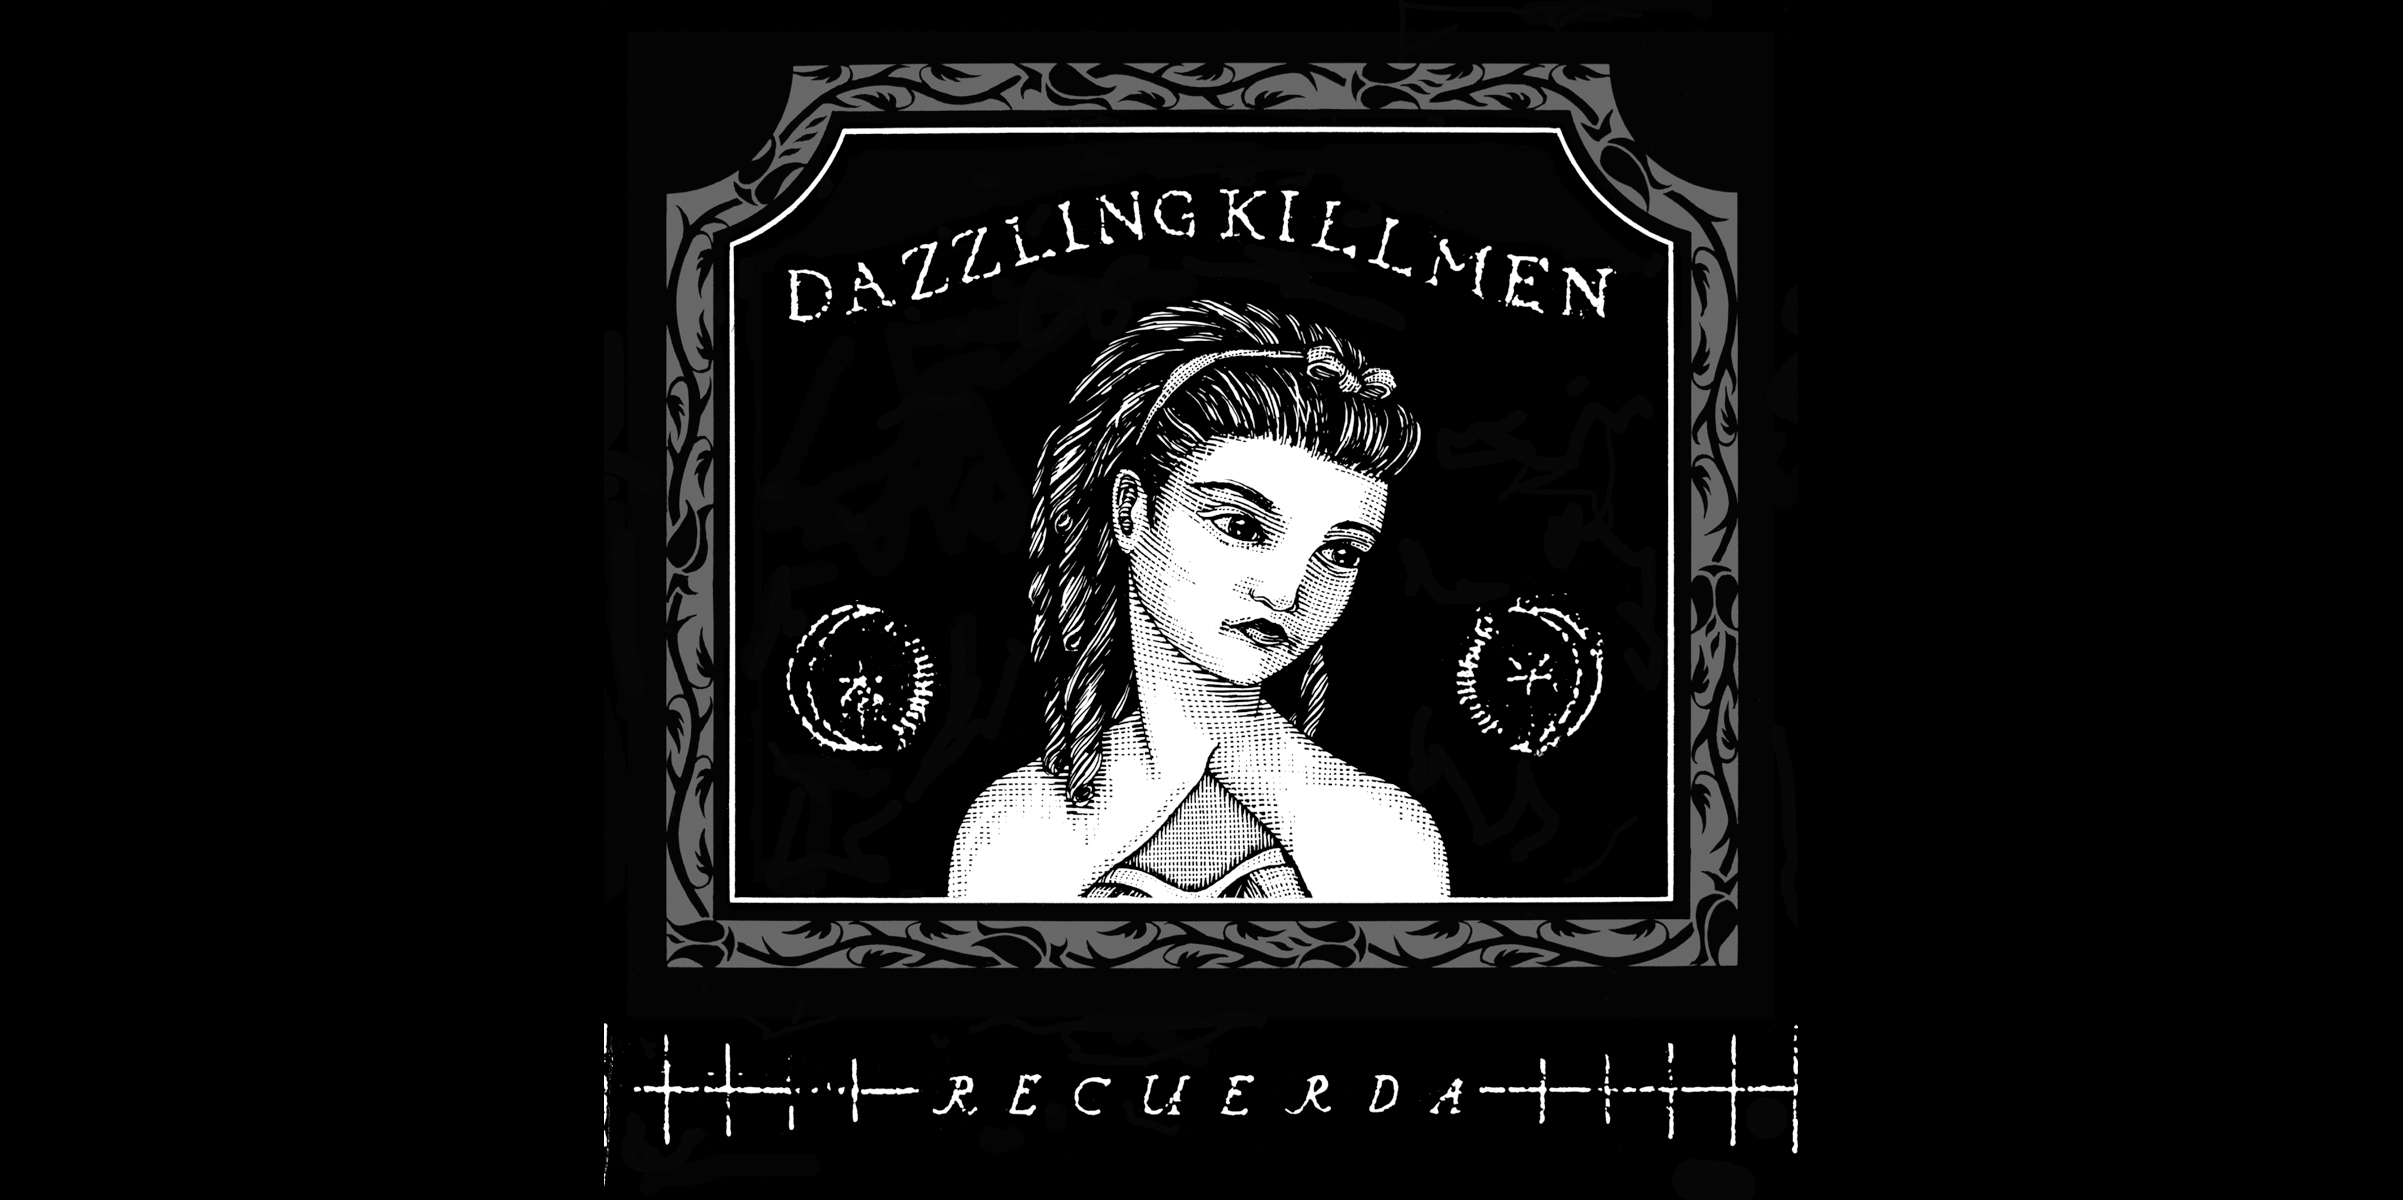 Dazzling Killmen,  Recurada . CD Booklet Cover.  1996. Pen and ink, Scratch board. Released by Skin Graft Records.